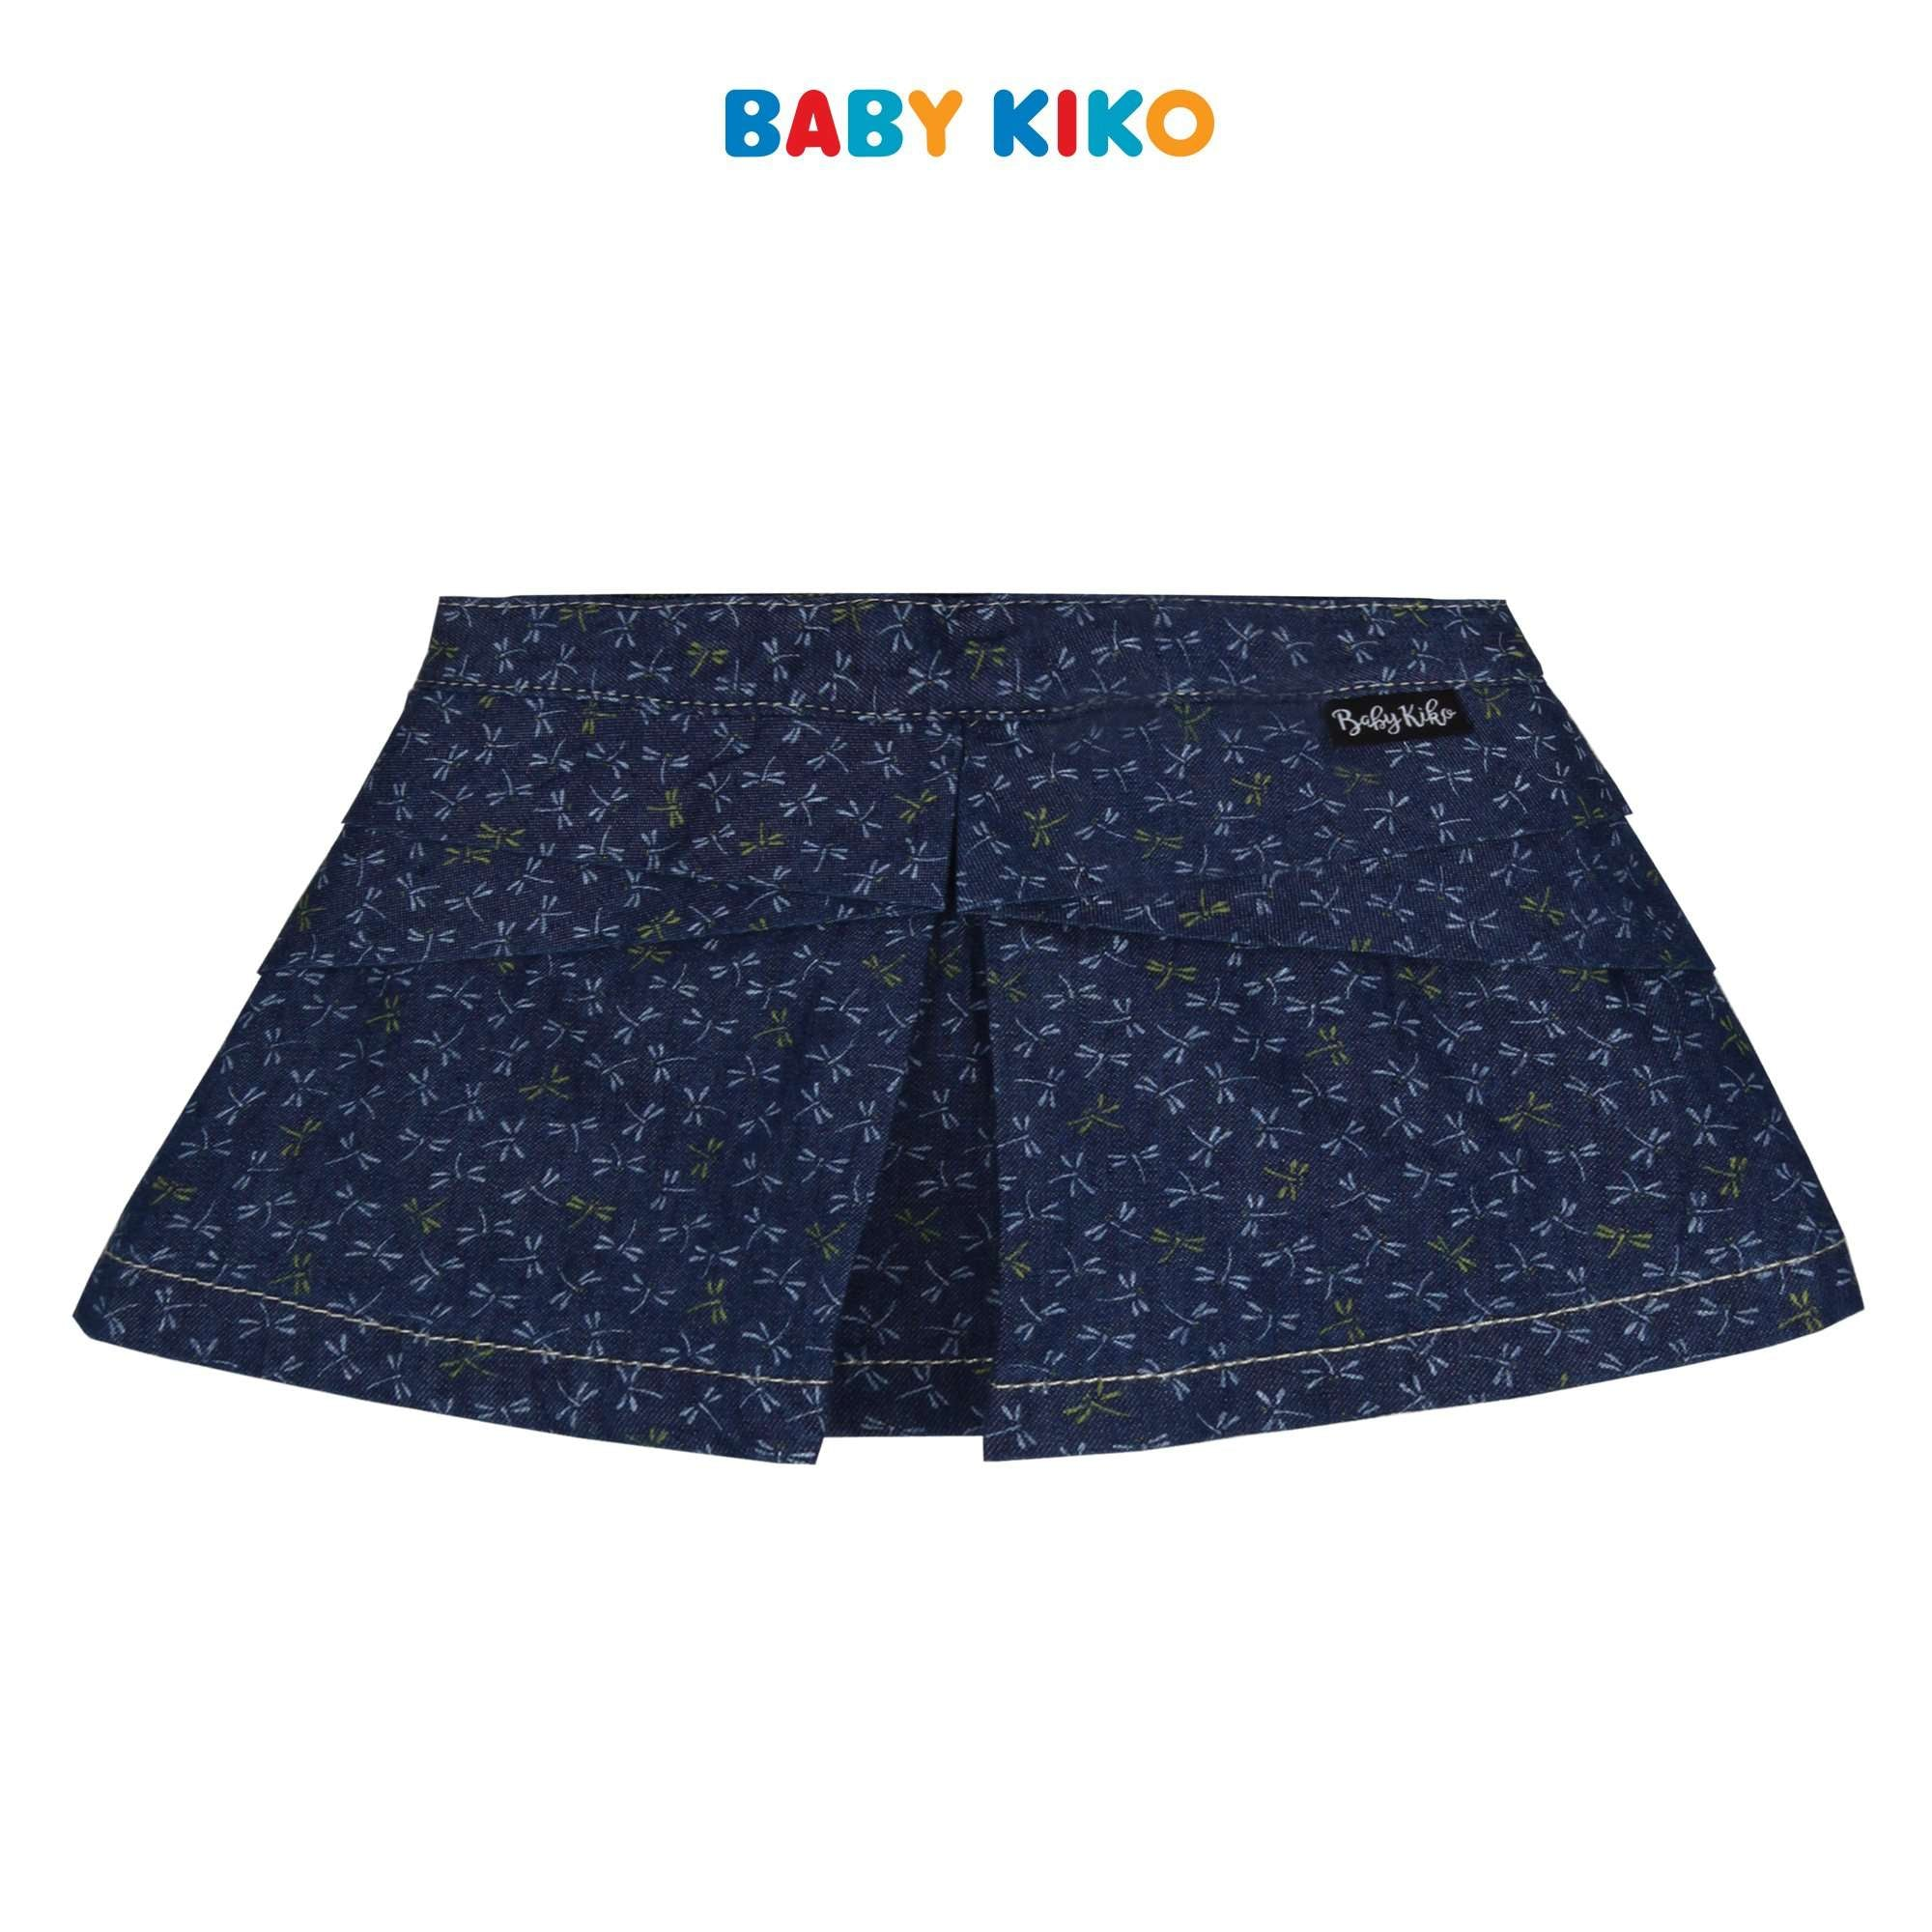 Baby KIKO Baby Girl Skirt with Panty - 330074-221 : Buy Baby KIKO online at CMG.MY